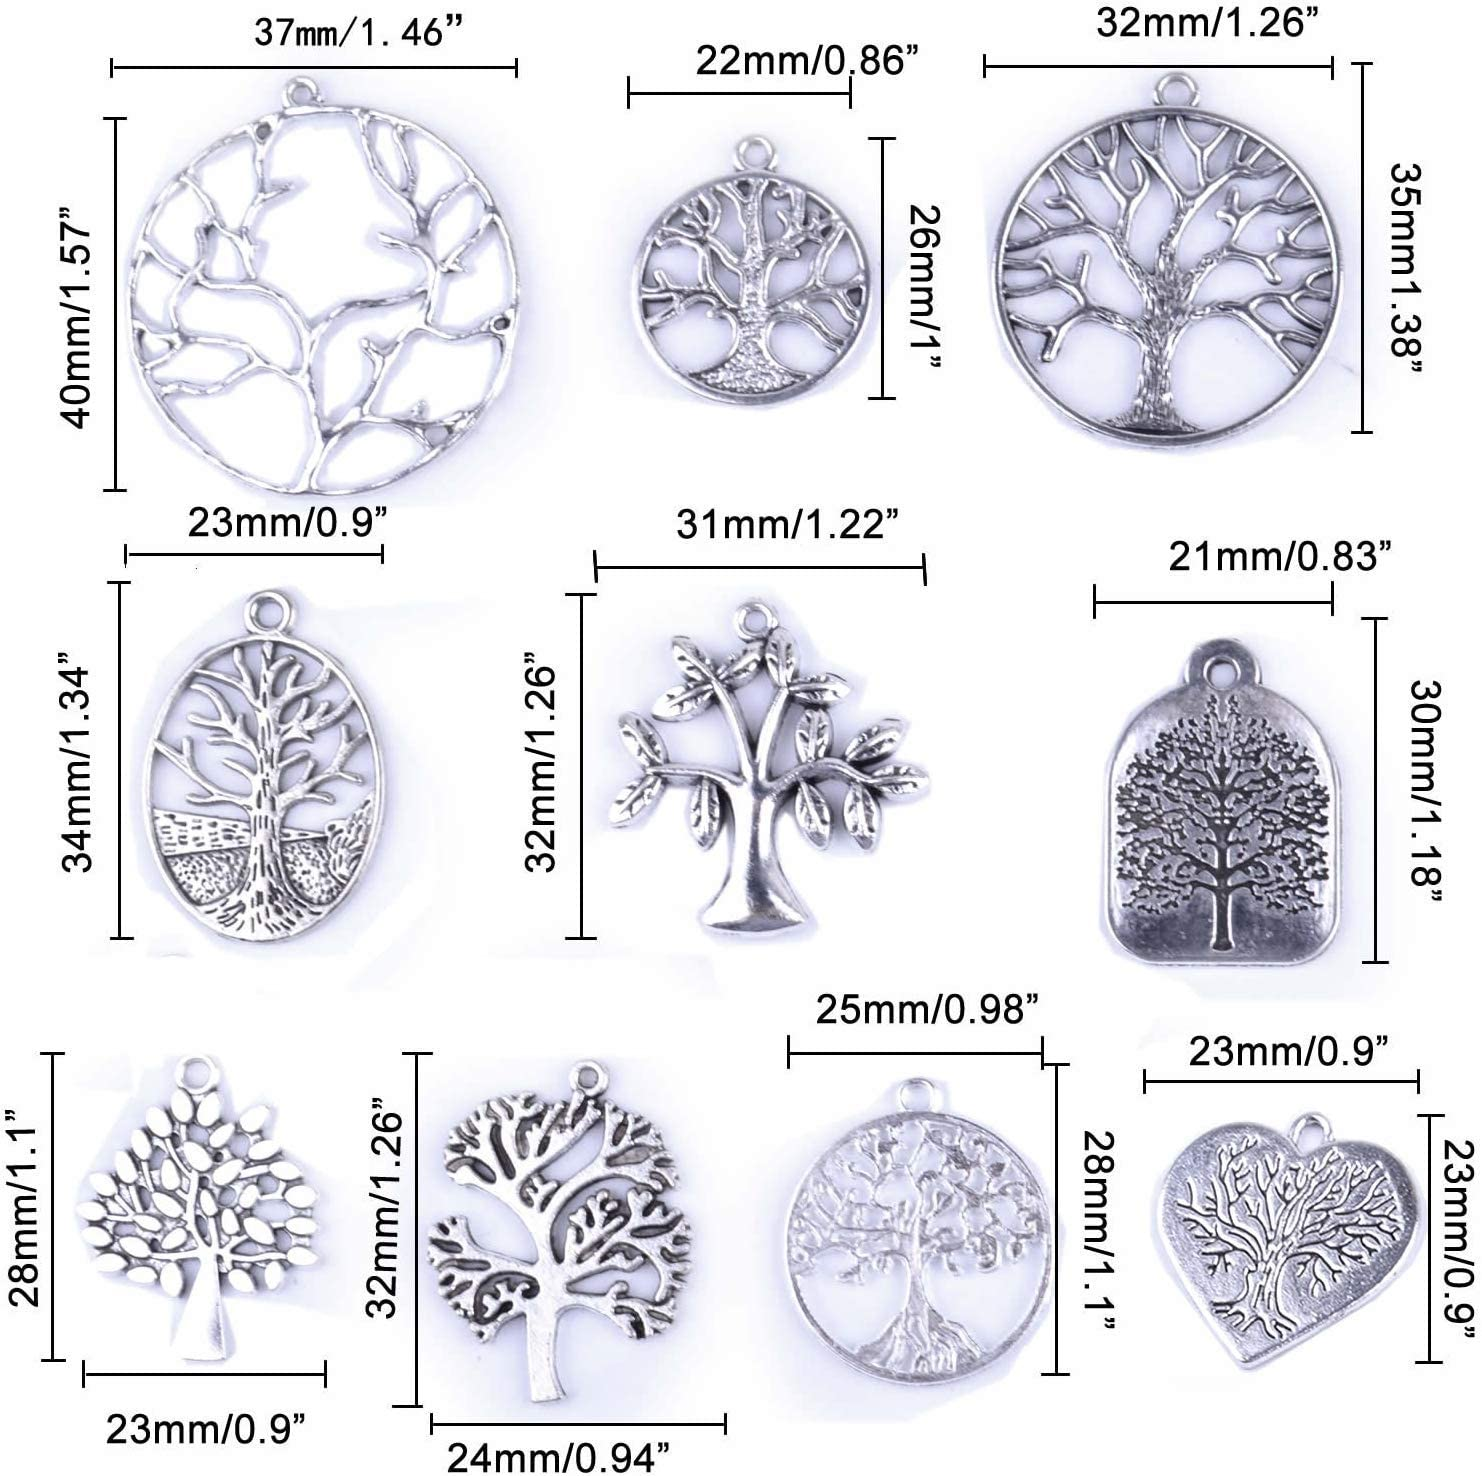 BronaGrand 40Pcs Tree of Life Charms Pendents for DIY Bracelet Necklace Earrings Antique Silver